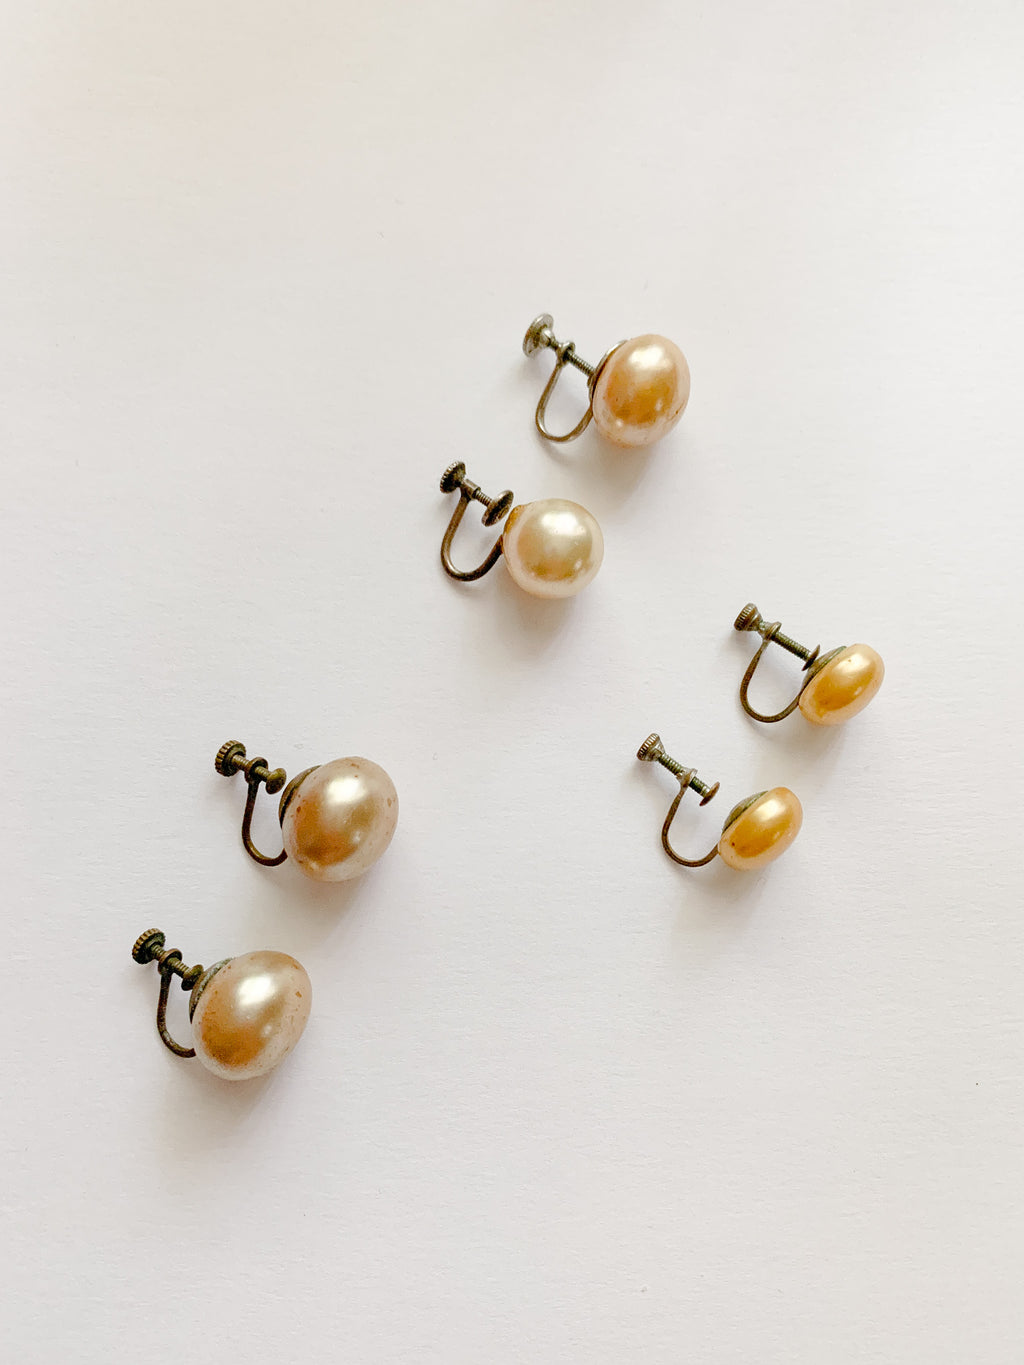 Vintage Earrings - Pearl